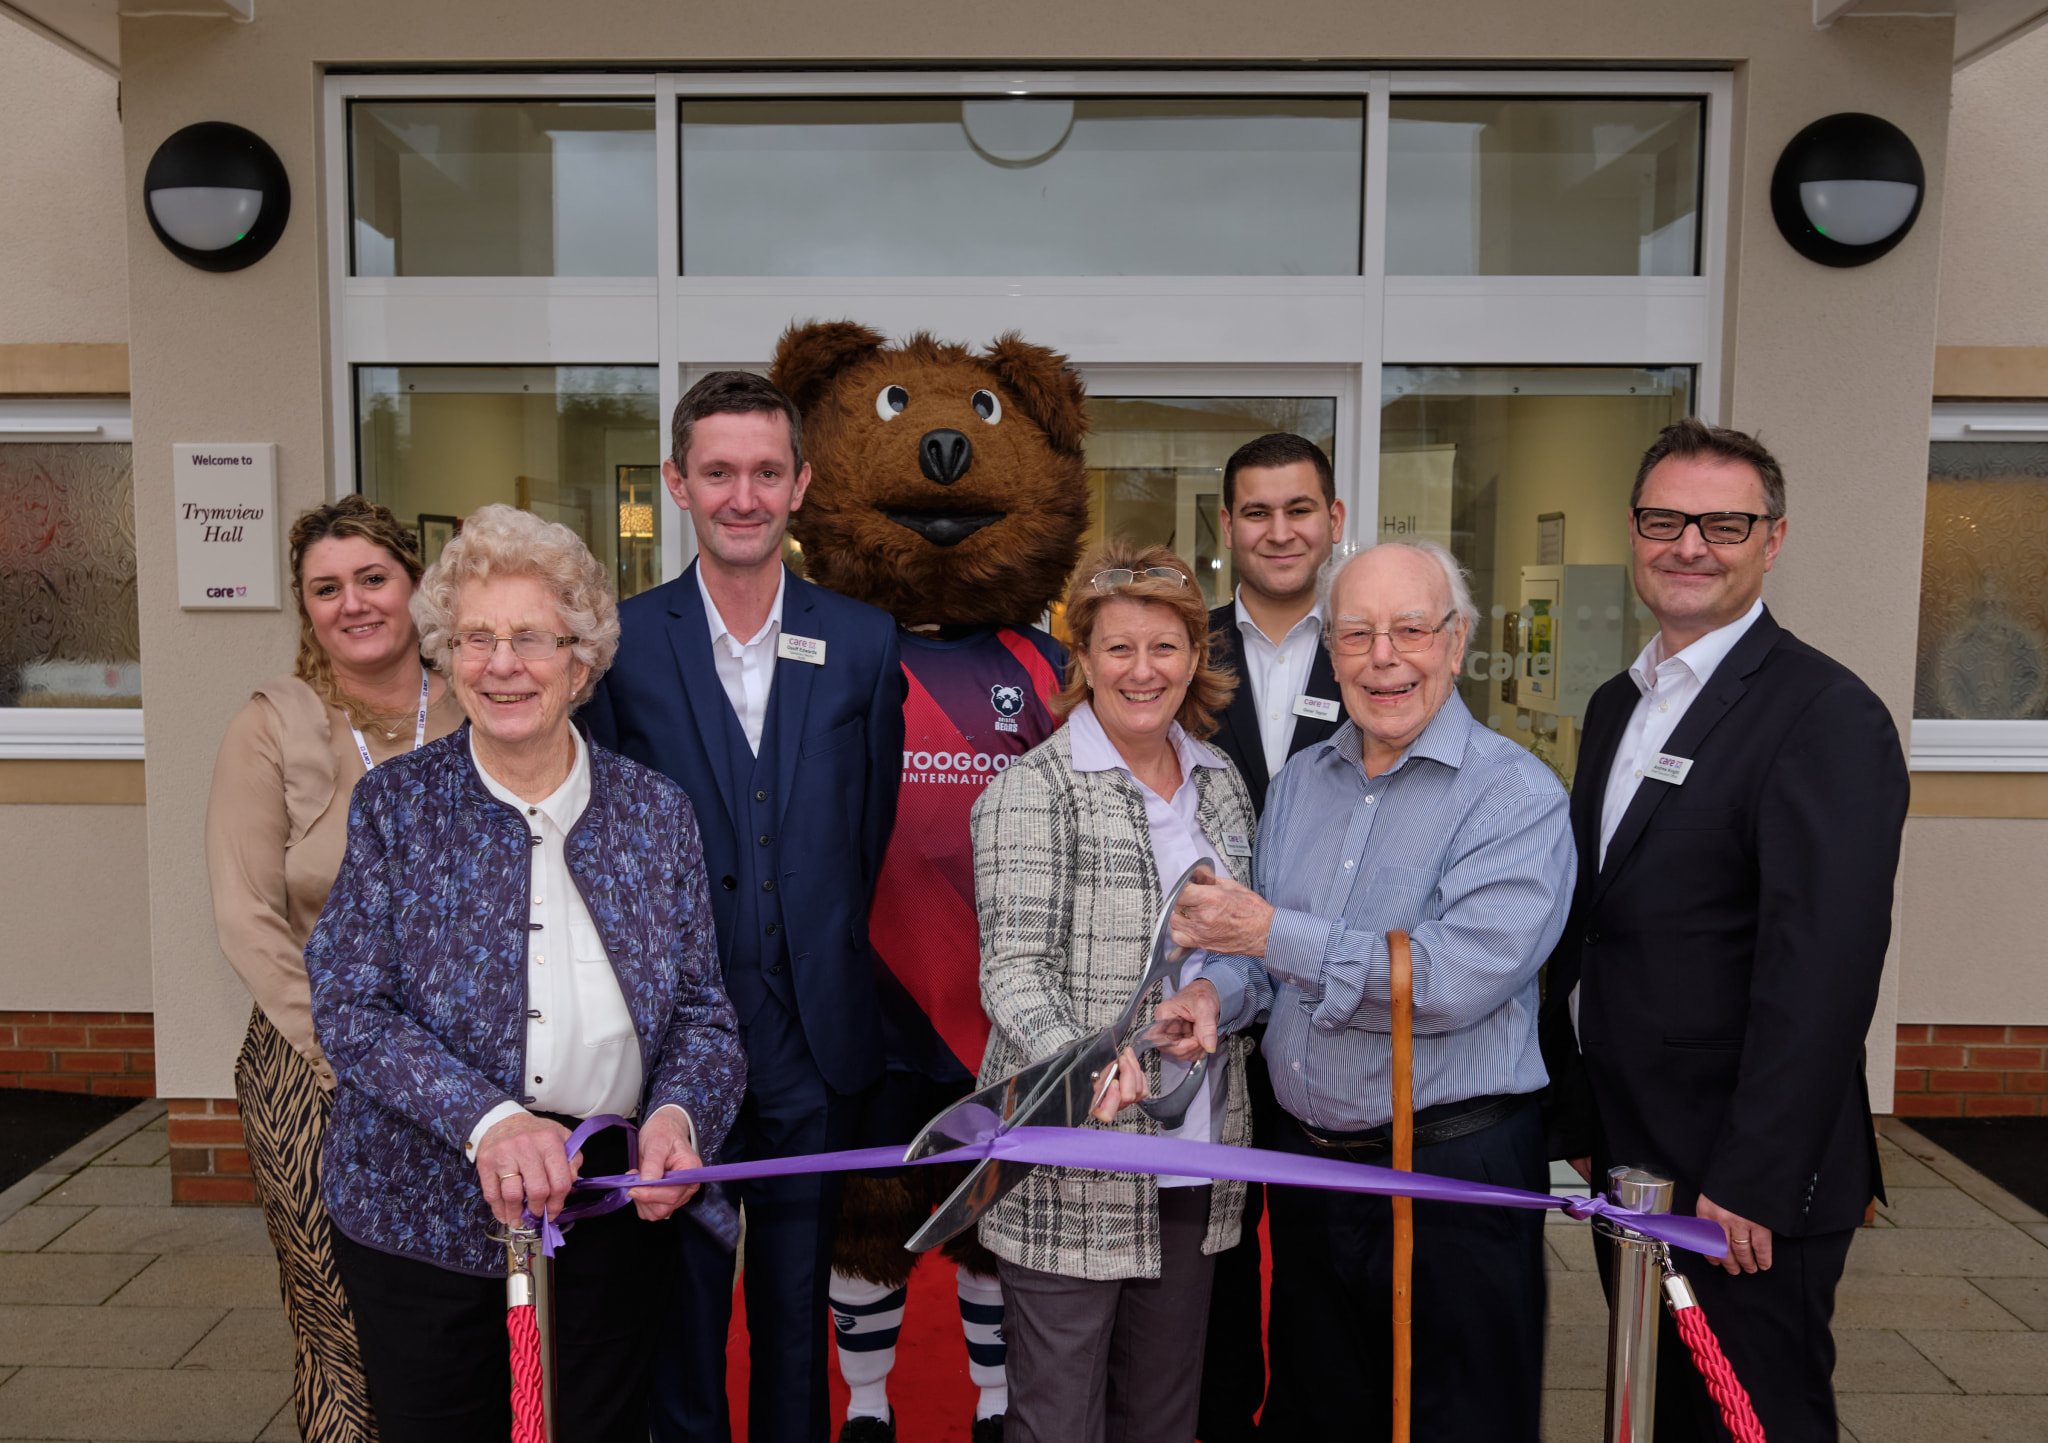 Care UK's Trymview Hall is declared open by the Bristol Bears' Mascot Brizzley Bear